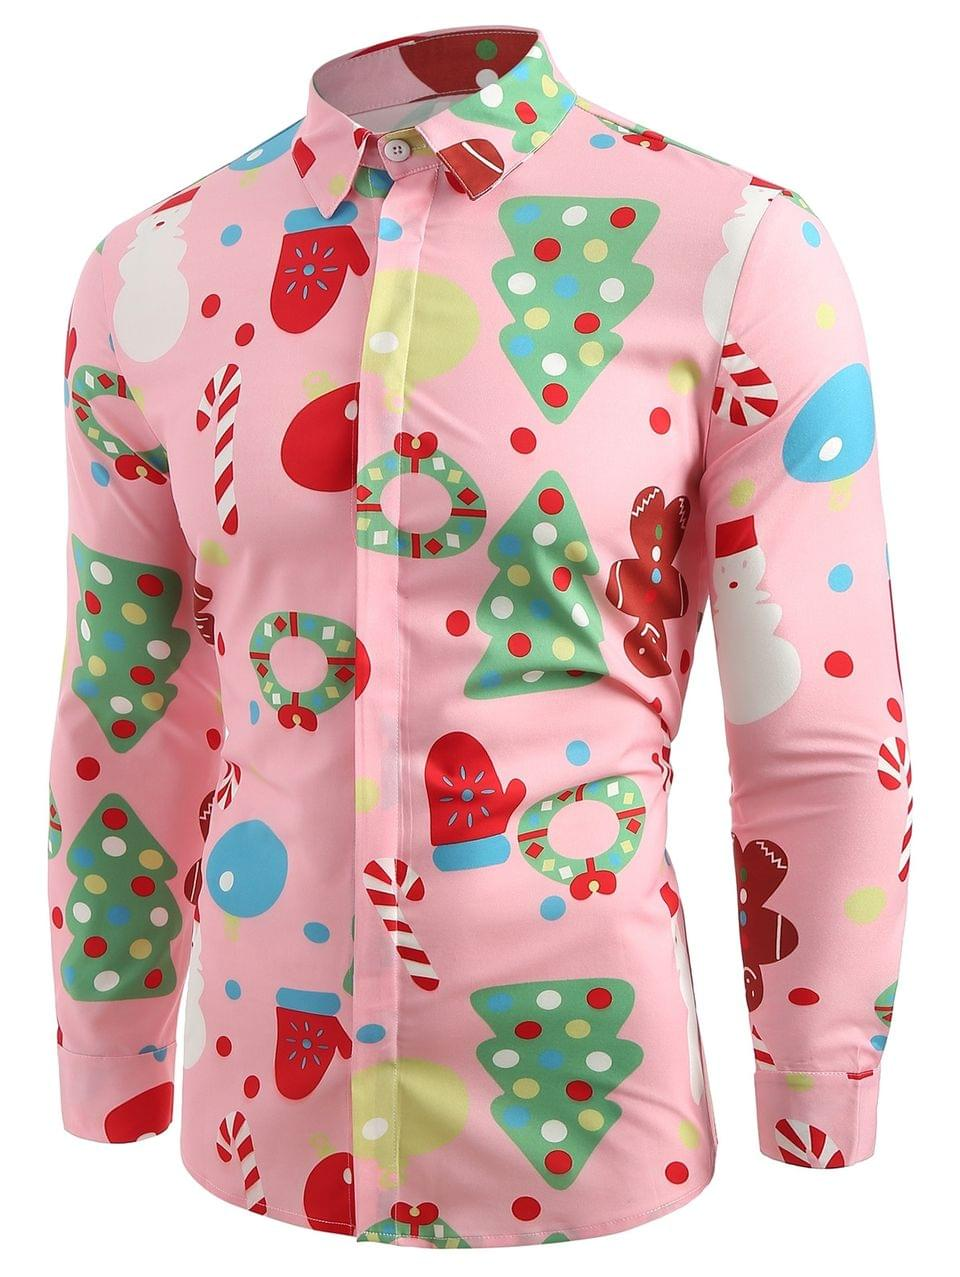 Men's Christmas Theme Button Up Shirt - Pink 2xl